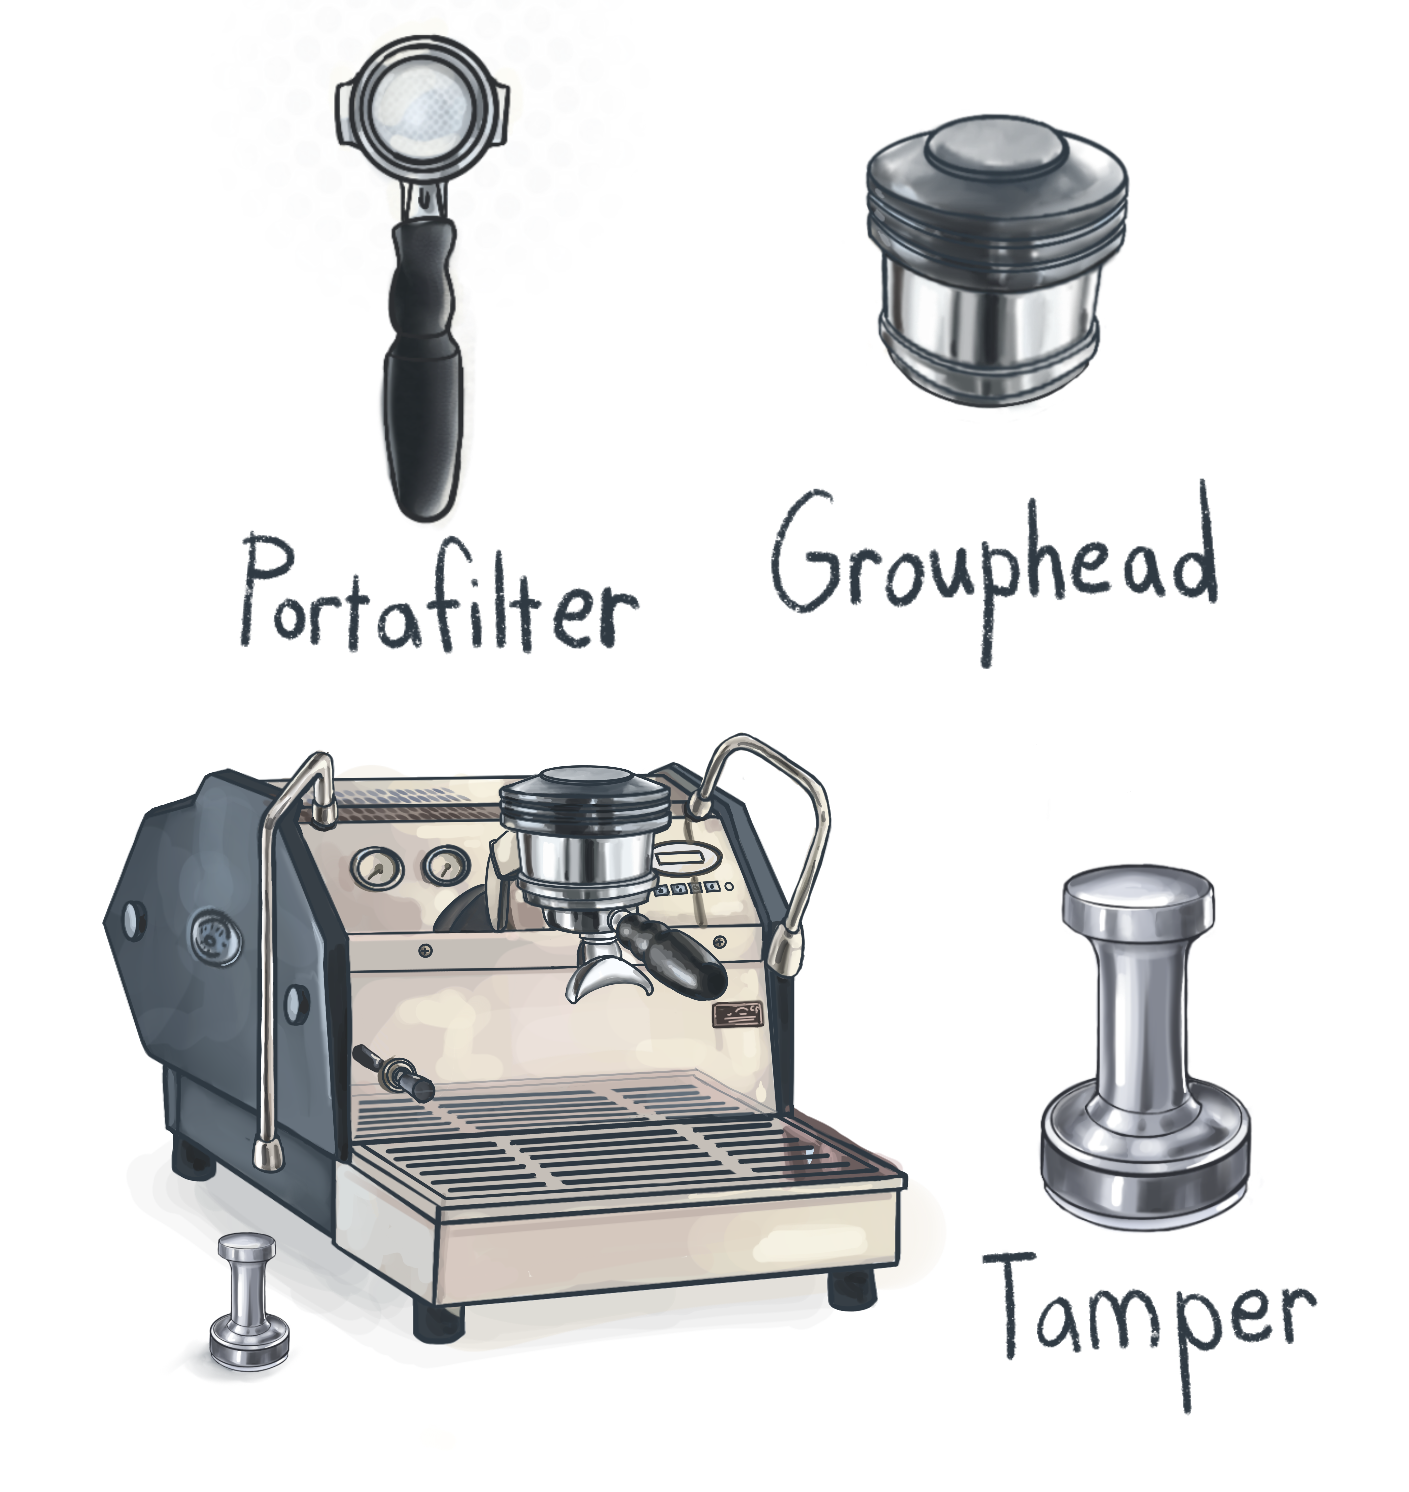 Hand drawn illustration of an espresso machine and it's parts